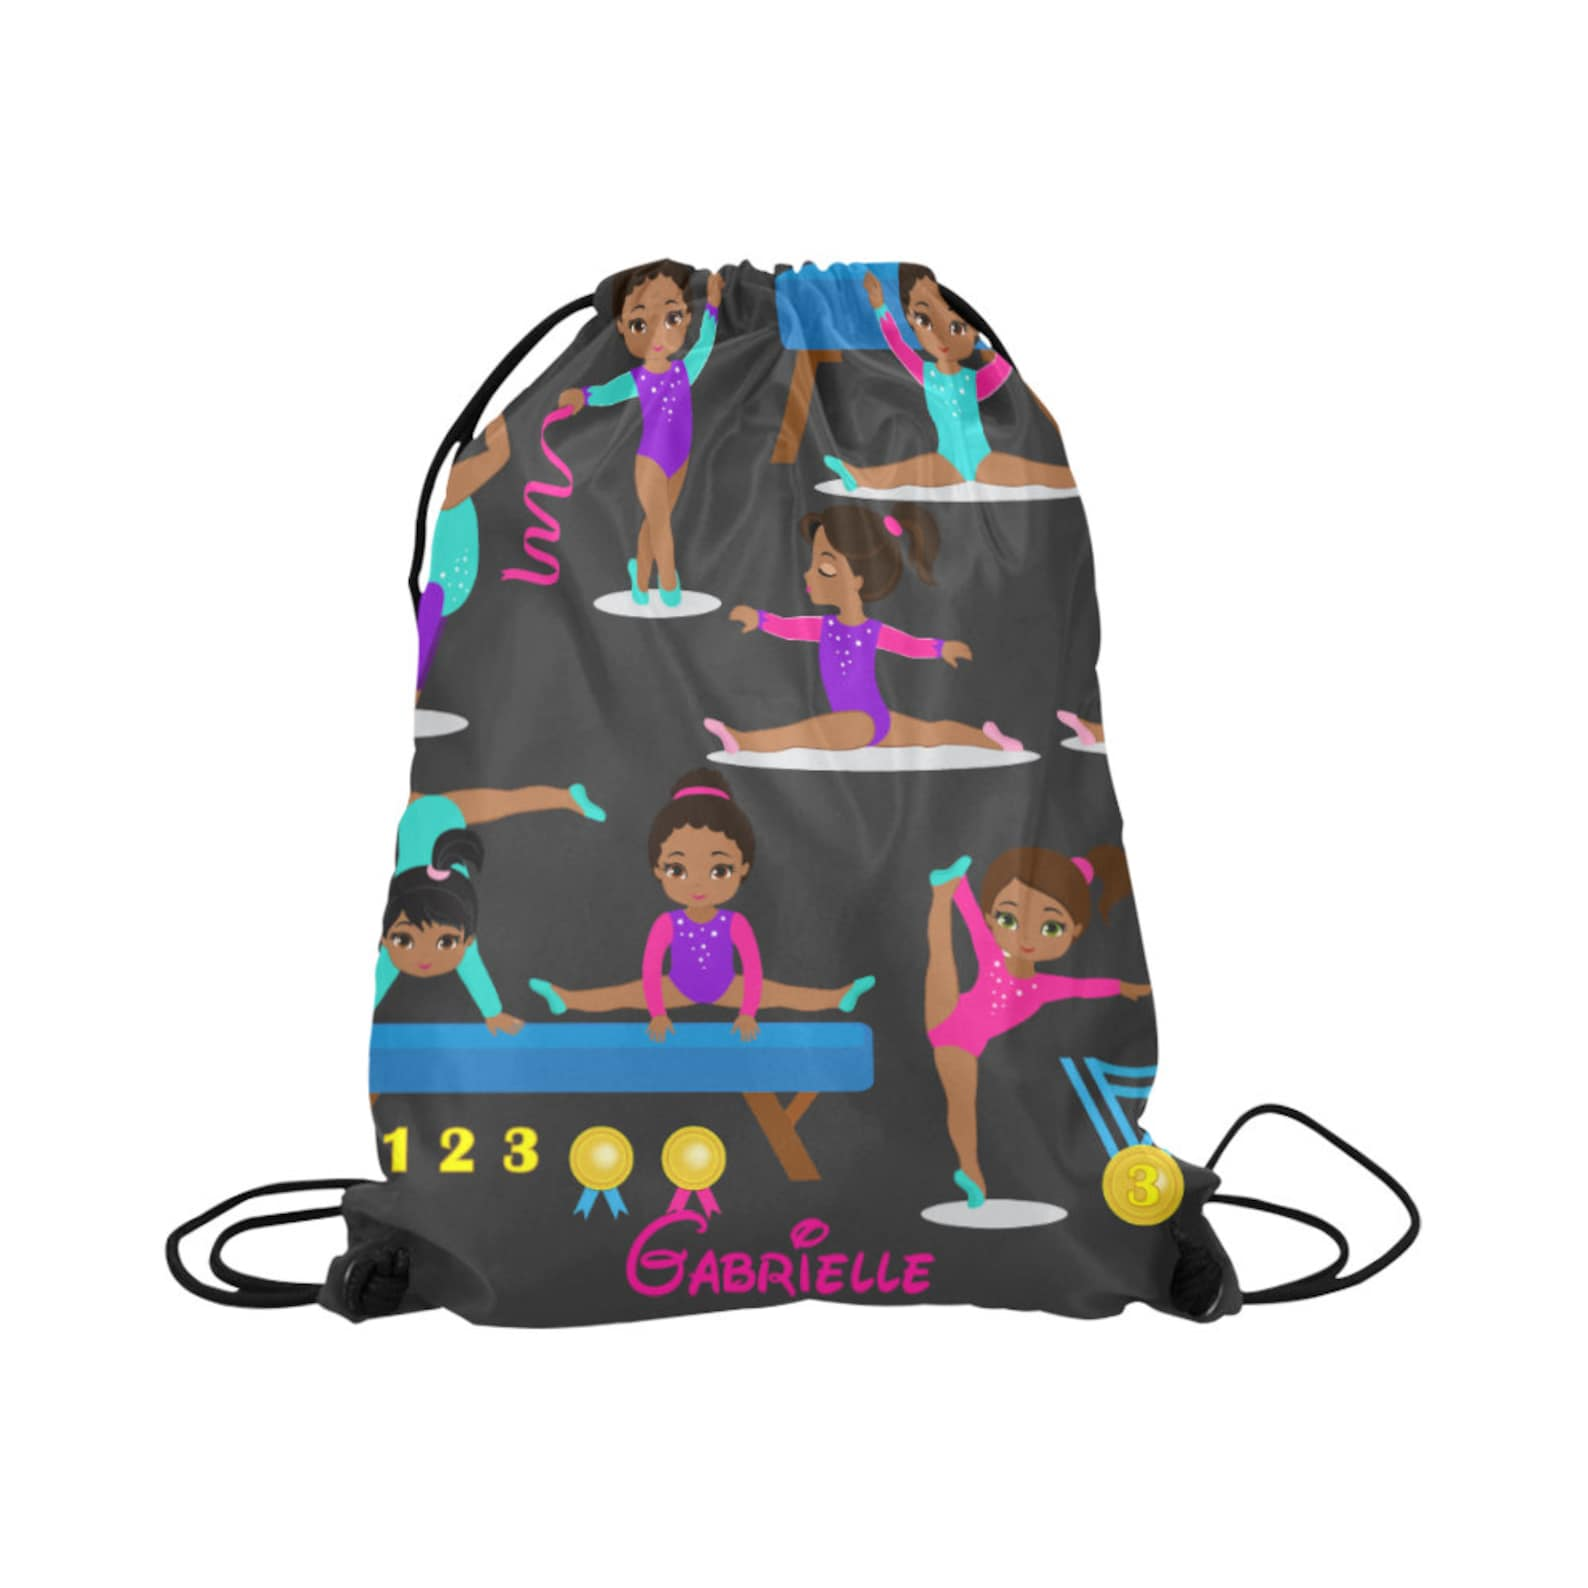 personalized dance bag, drawstring backpack, ballerina backpack for girls, dance bag, ballet drawstring backpack , girls ballet